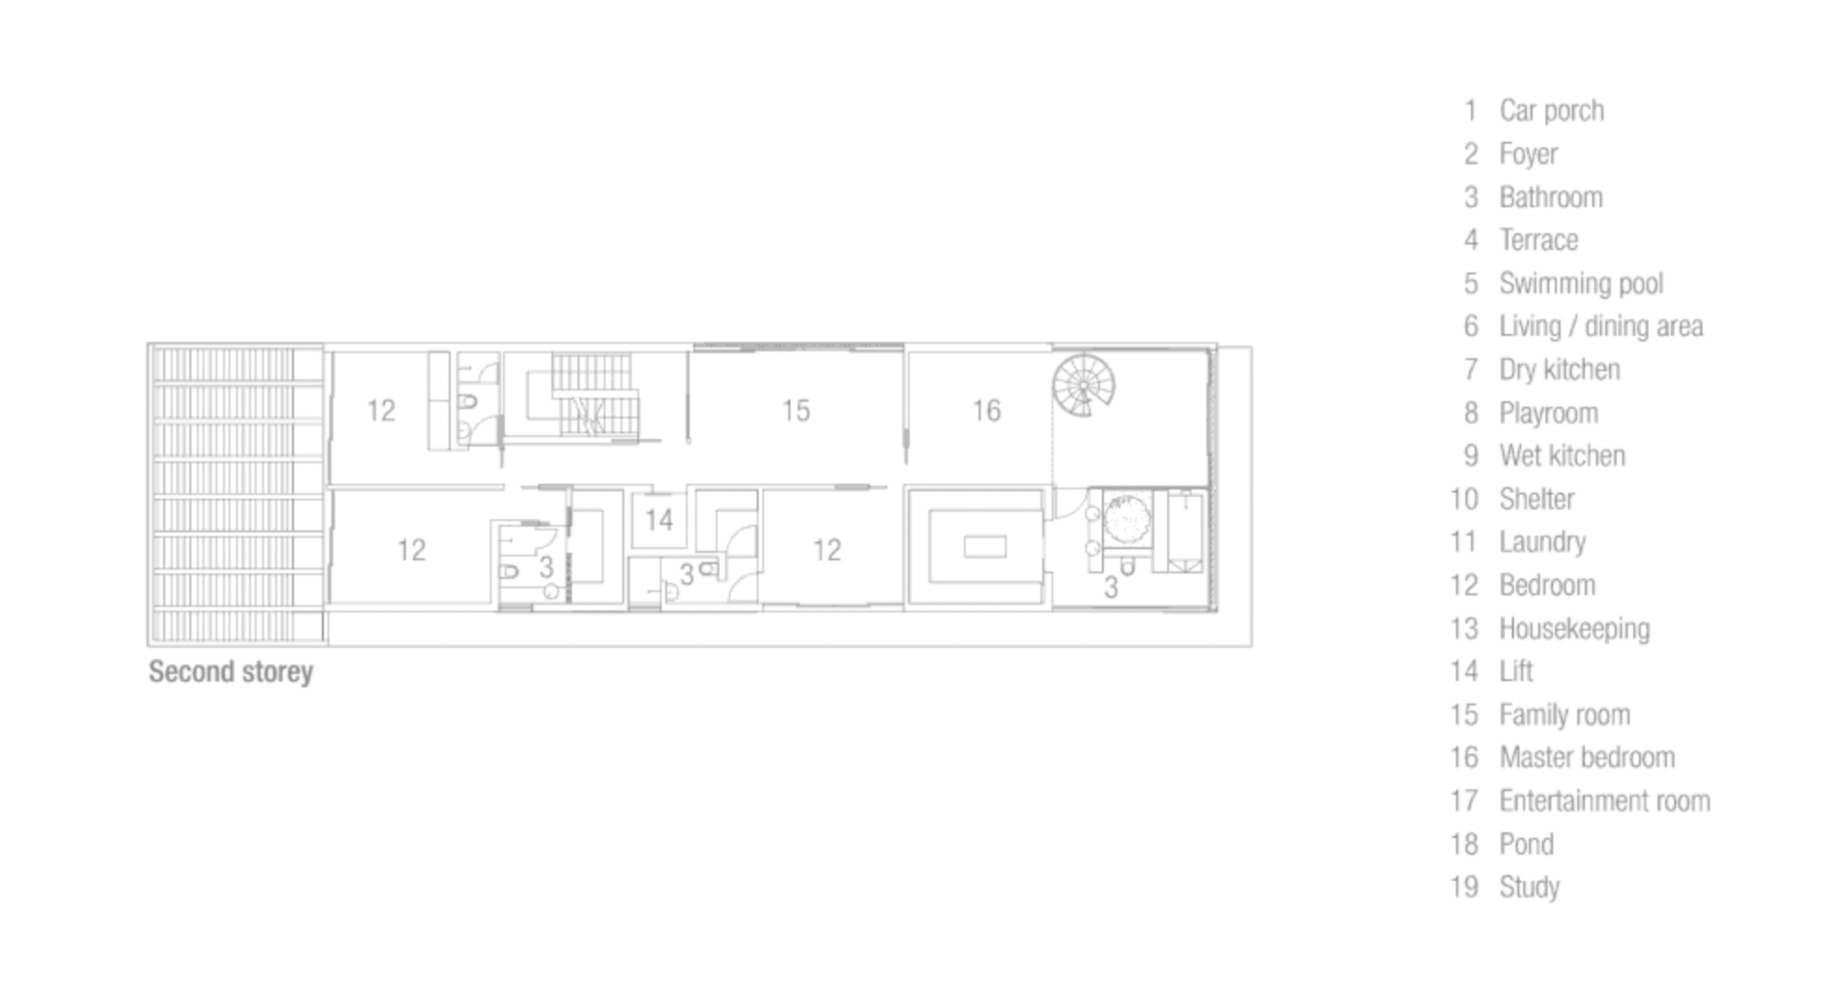 Second Floor Plan - Discreetly Detached Luxury Home - Princess of Whales Rd, Singapore